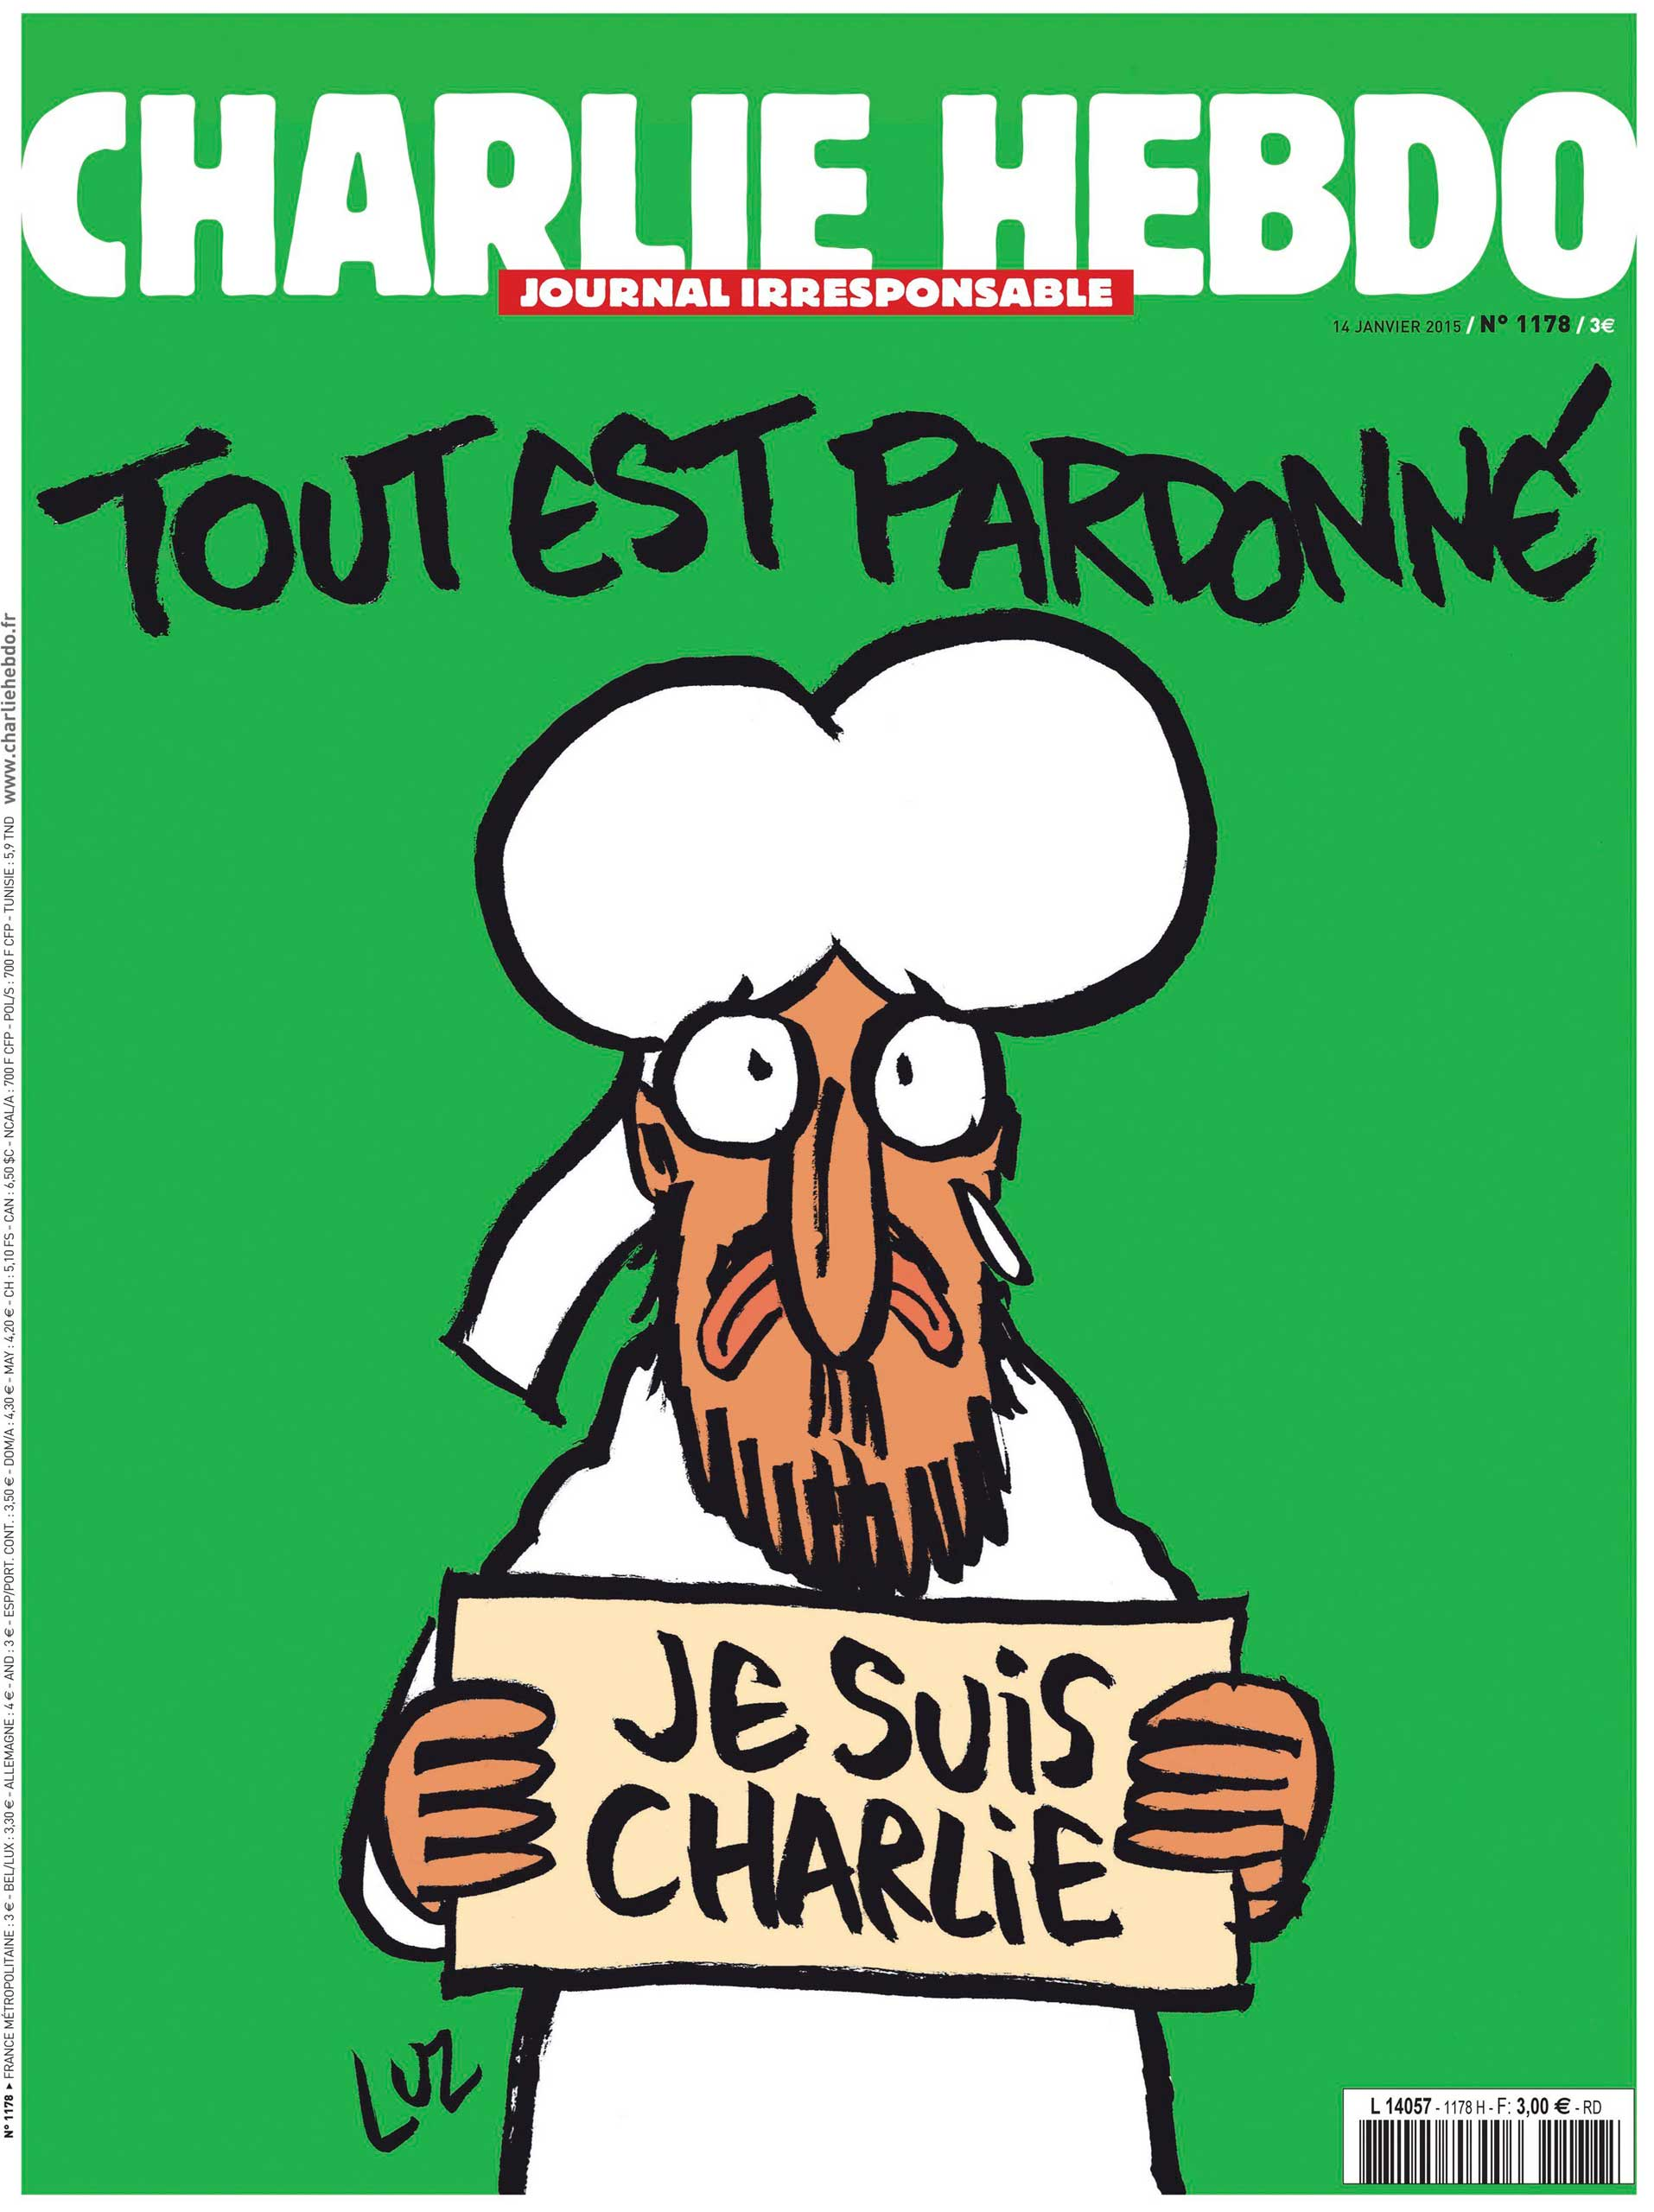 The new cover of satirical weekly Charlie Hebdo.